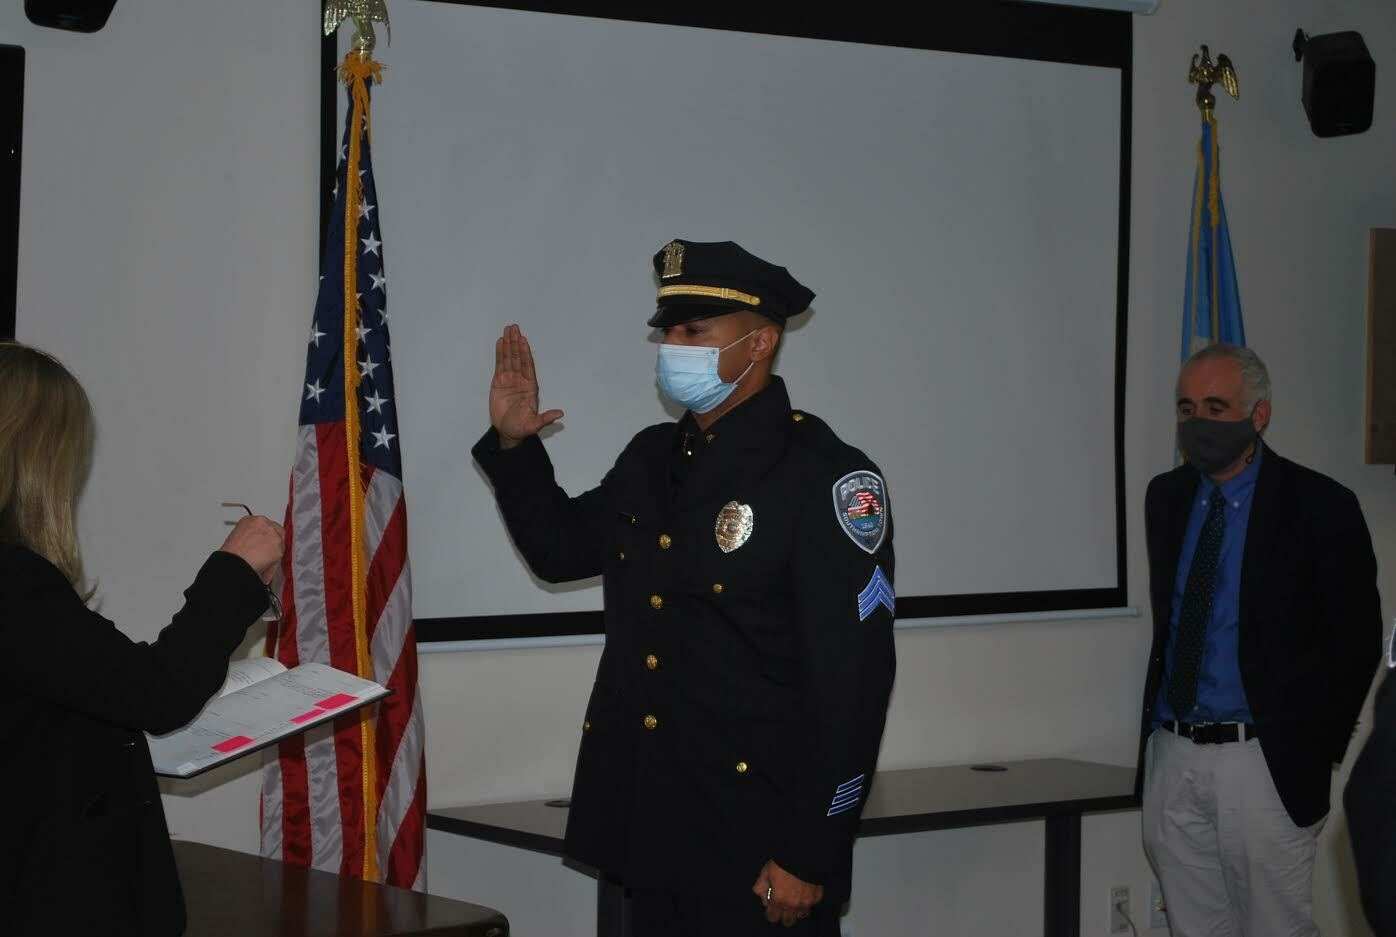 Sherekhan Parker made history December 1, as he was sworn in Southampton Town Police Sergeant, the first African American in the department to achieve the rank. COURTESY STPD